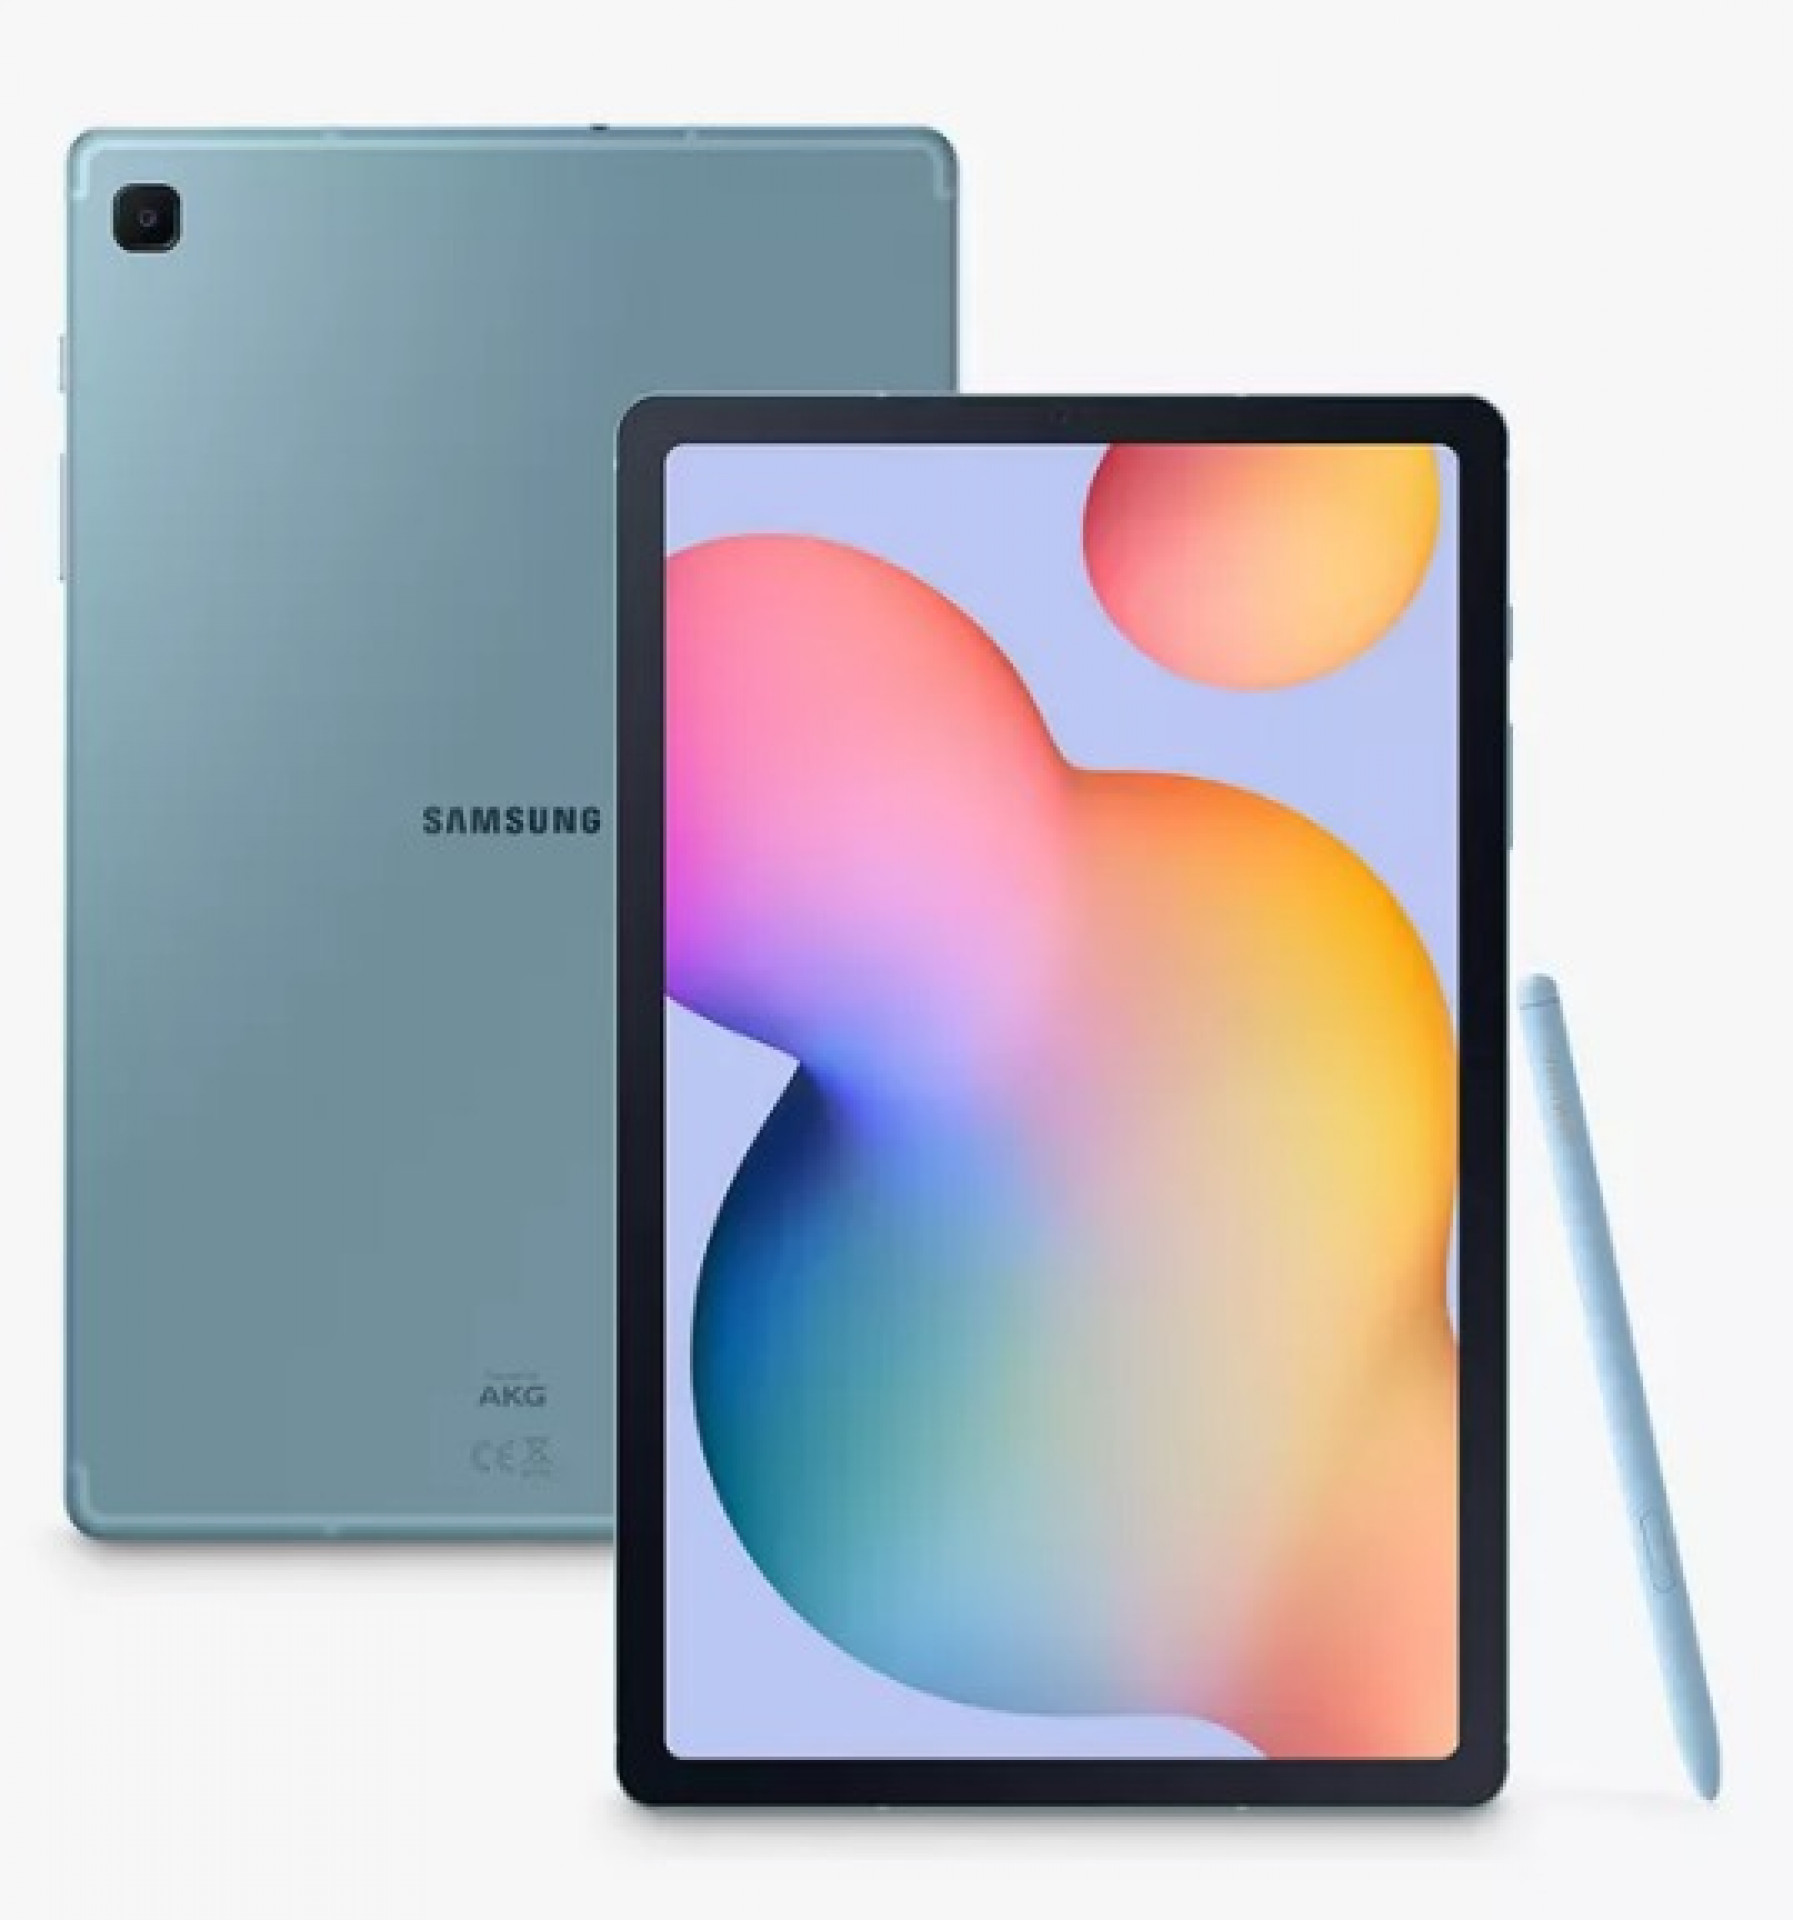 """Samsung Galaxy Tab S6 Lite Tablet with S Pen, Android, 64GB, 4GB RAM, Wi-Fi, 10.4"""", Angora Blue"""